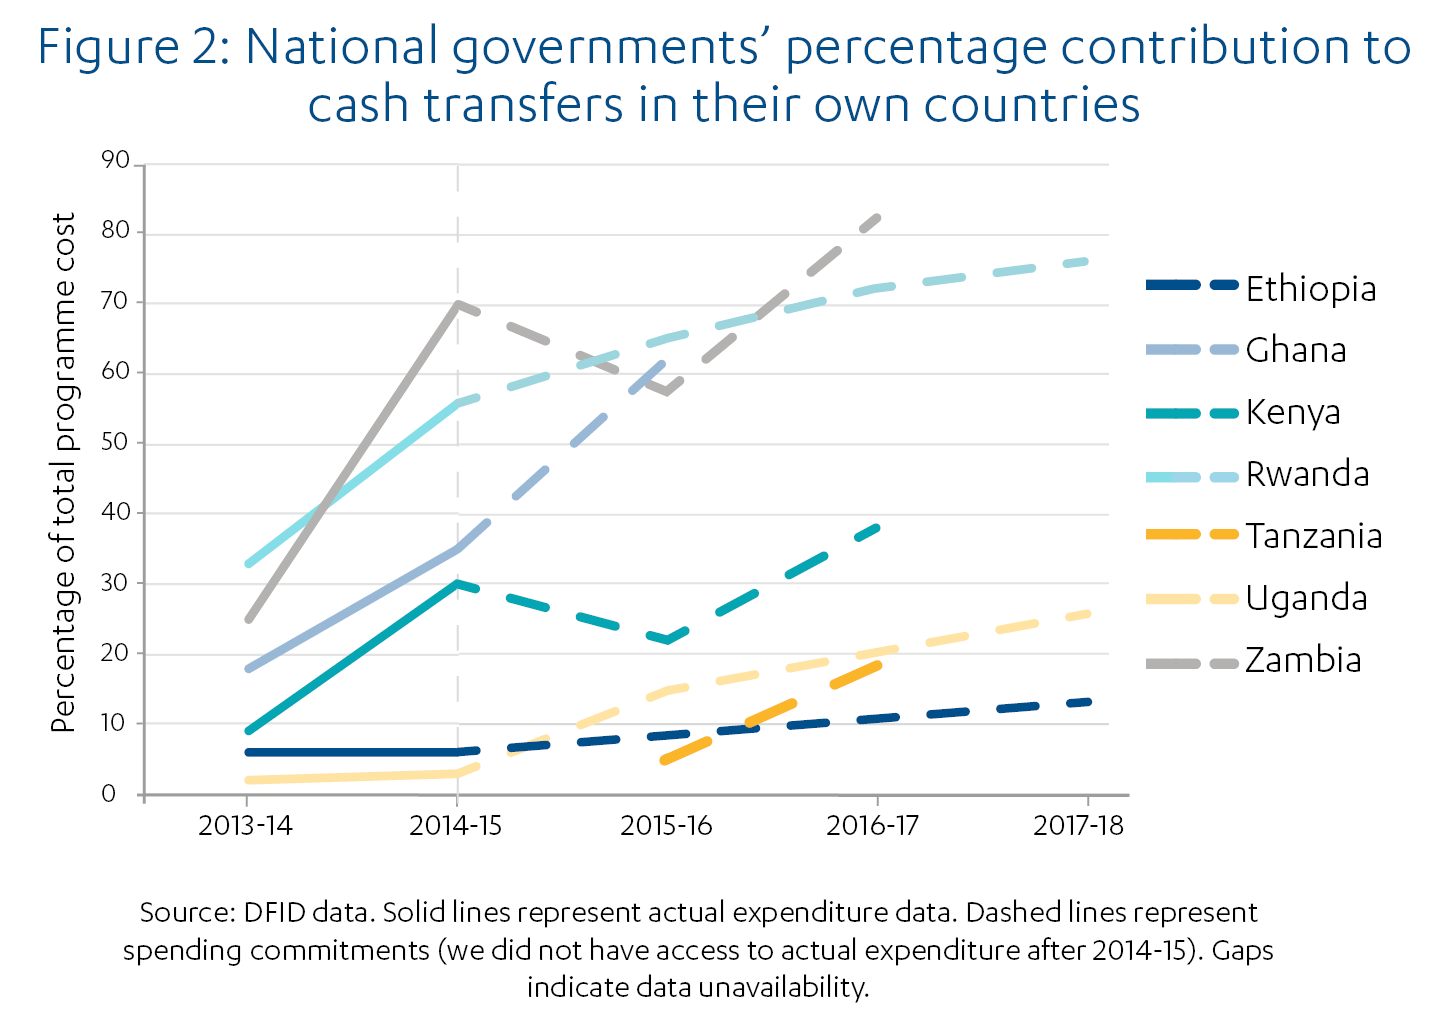 Figure 2: National governments' percentage contribution to cash transfers in their own countries, from 2013-14 to 2017-18